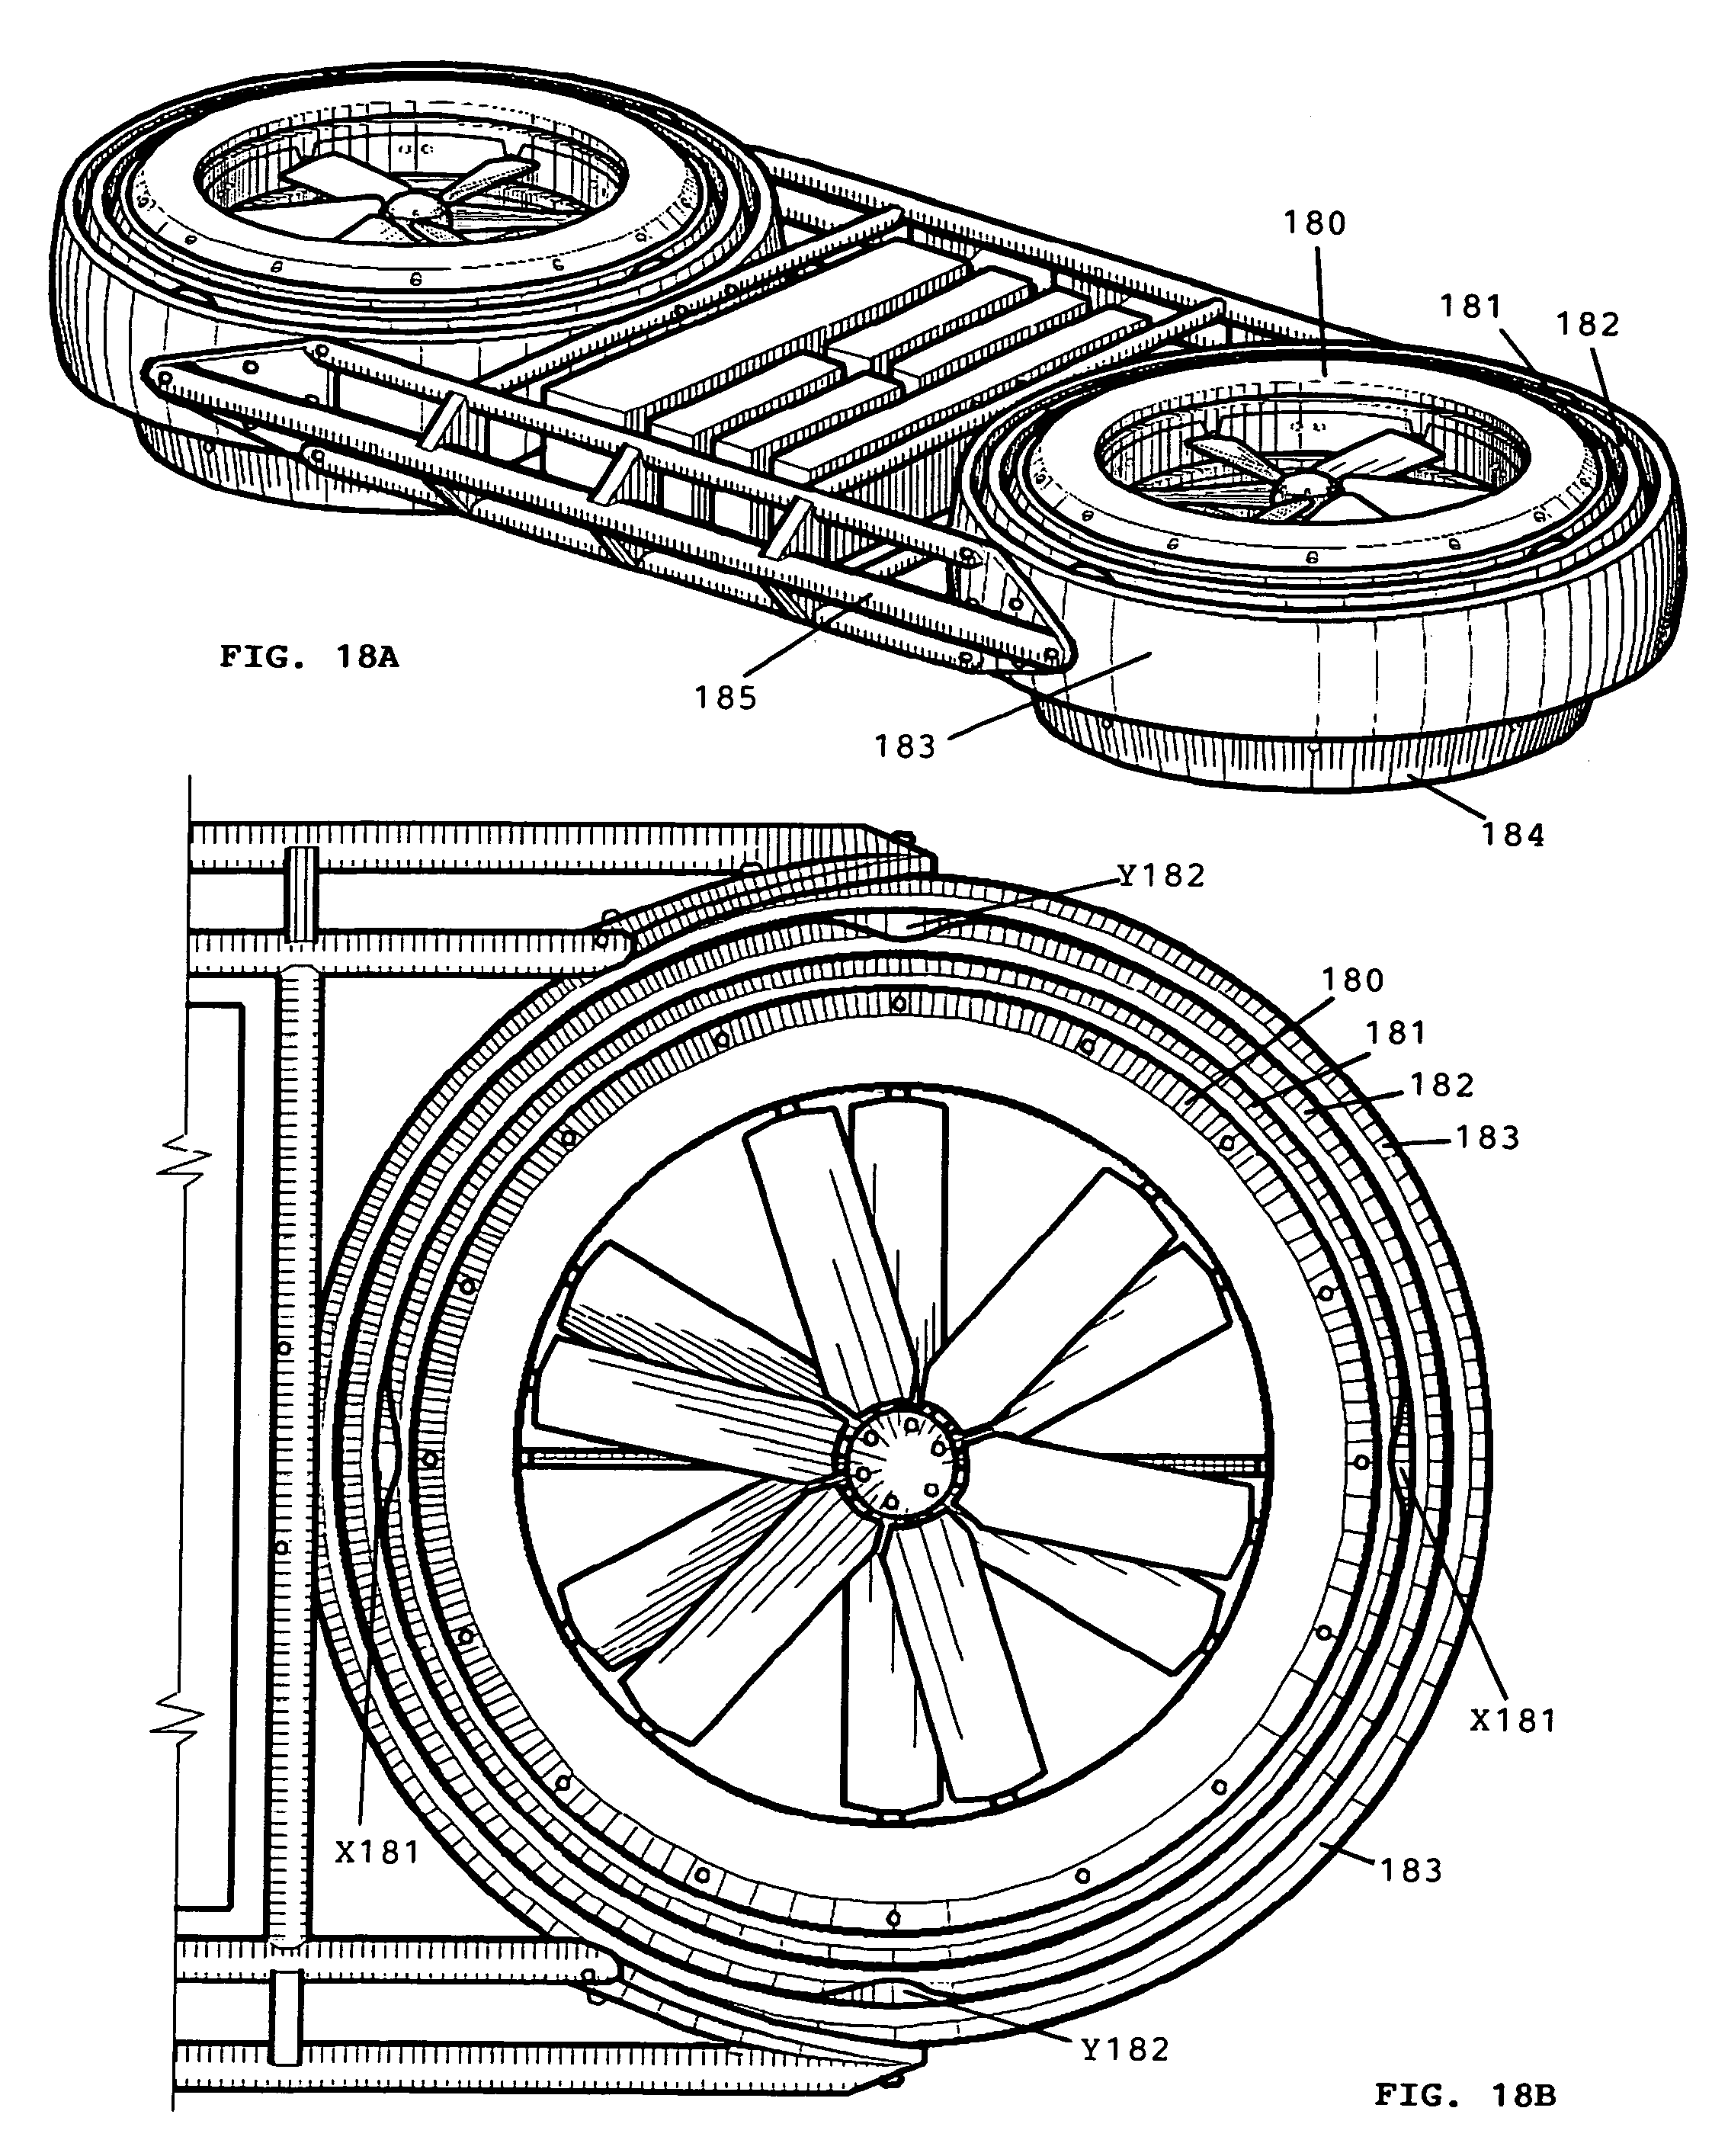 patent us 7 032 861 b2 1956 Army Jeep petitions